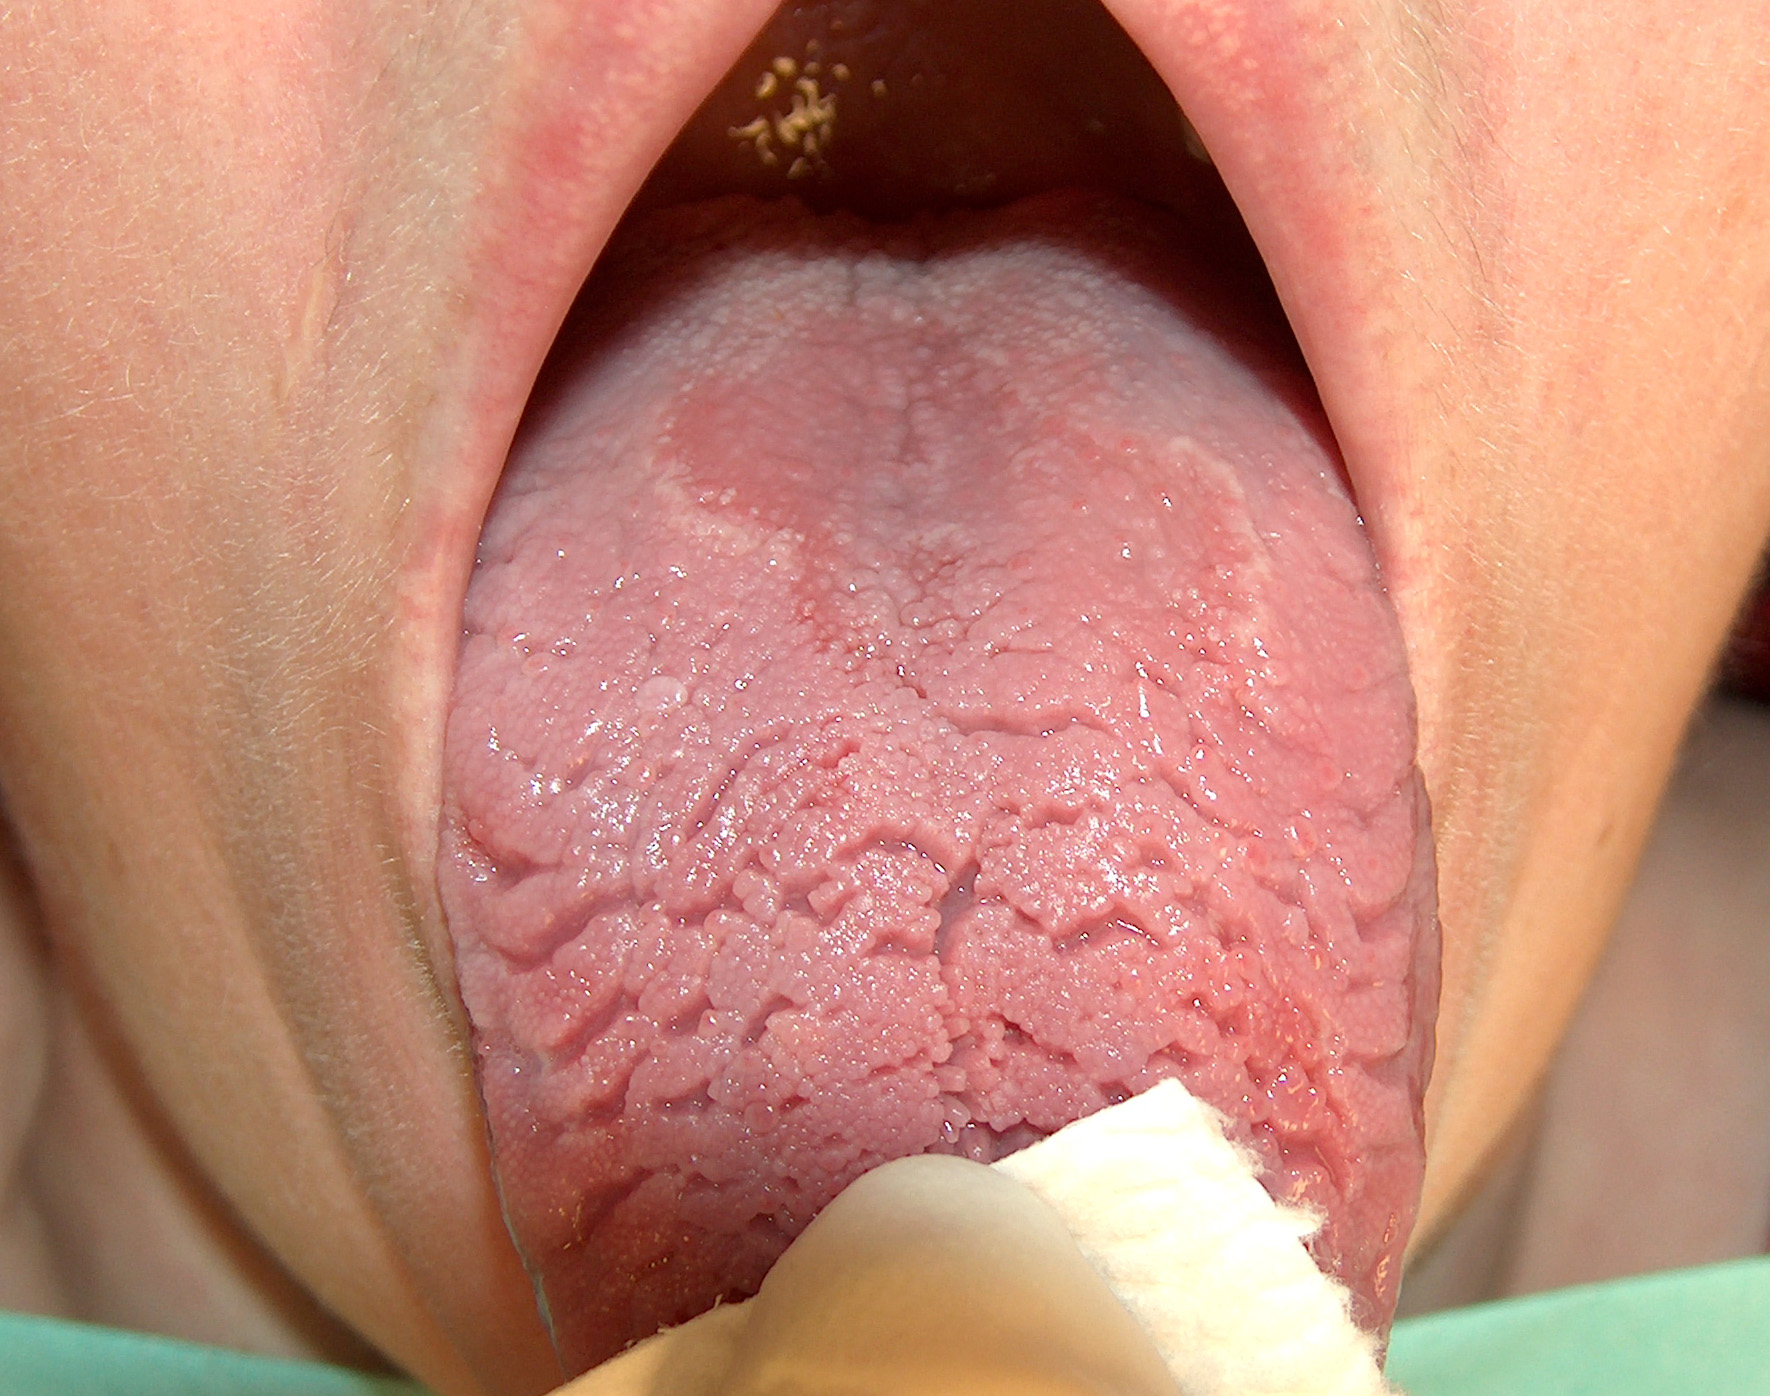 Geographic Fissured Tongue